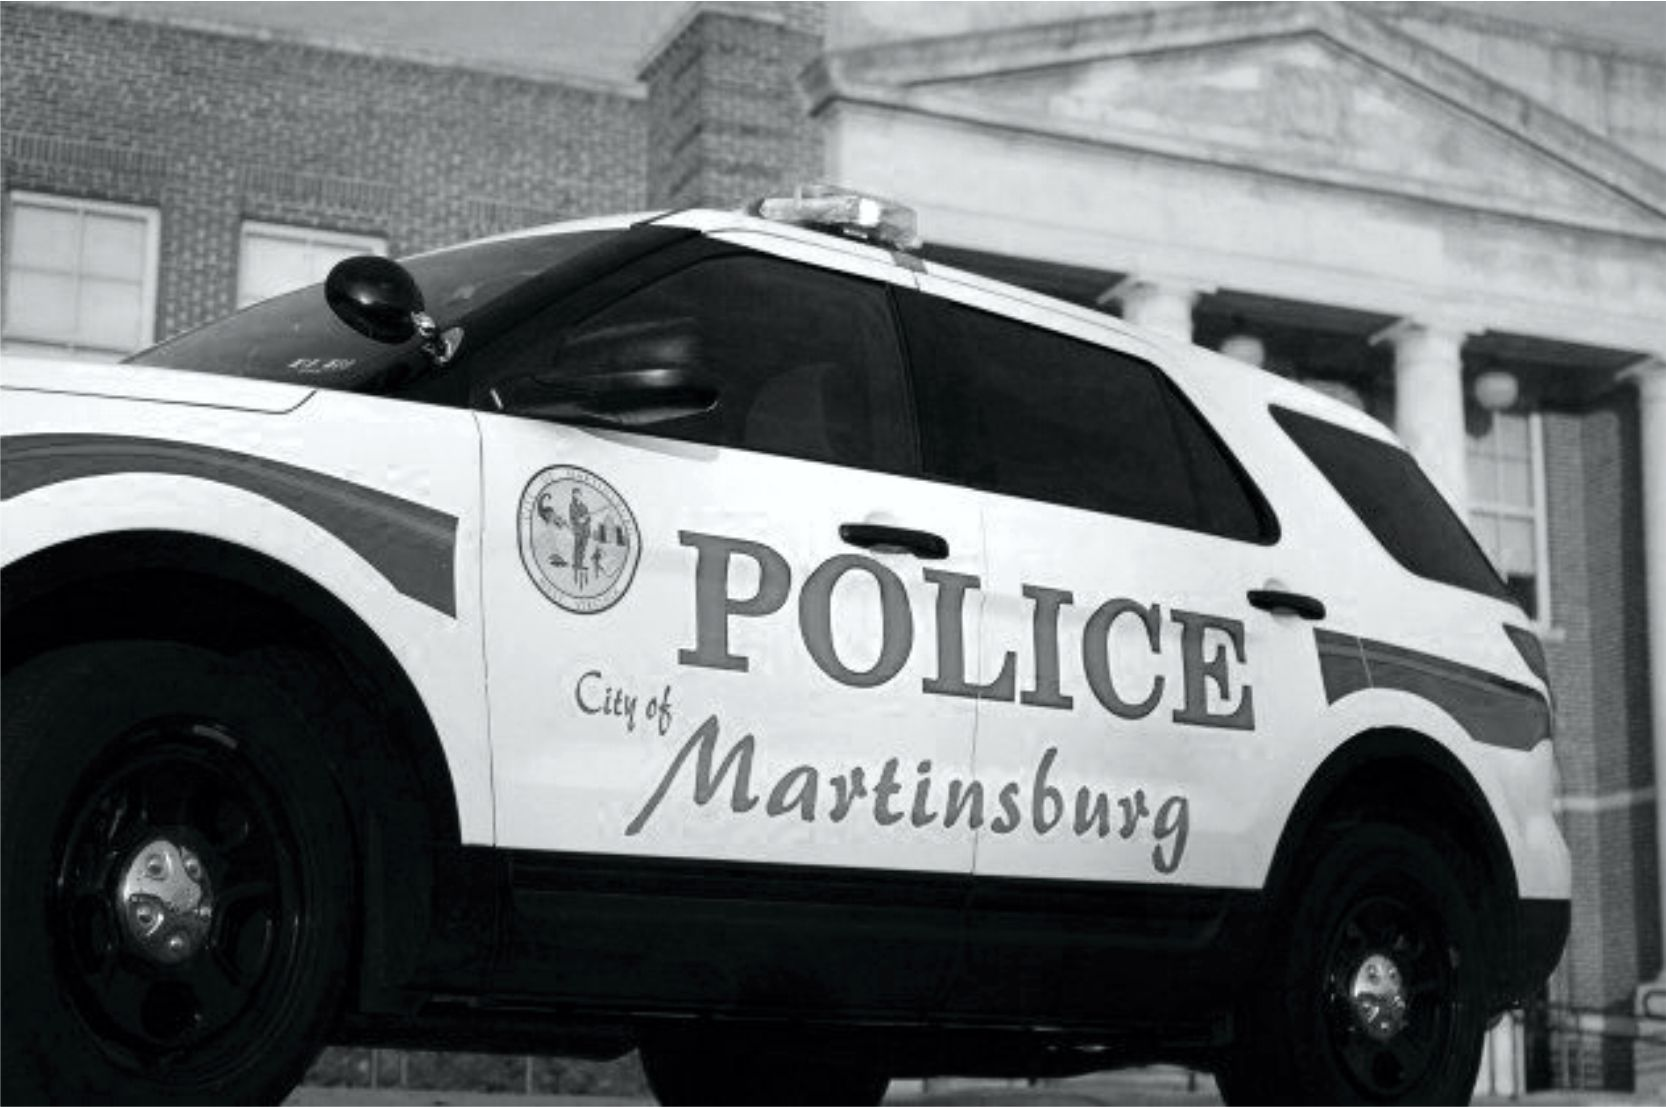 Martinsburg Police Department (Drop-off) - Thursday, July 18th @ 8:00AM & 4:00PM. TEN Reach Week Volunteers will deliver food and other prepackaged items to the Martinsburg Police Department staff.